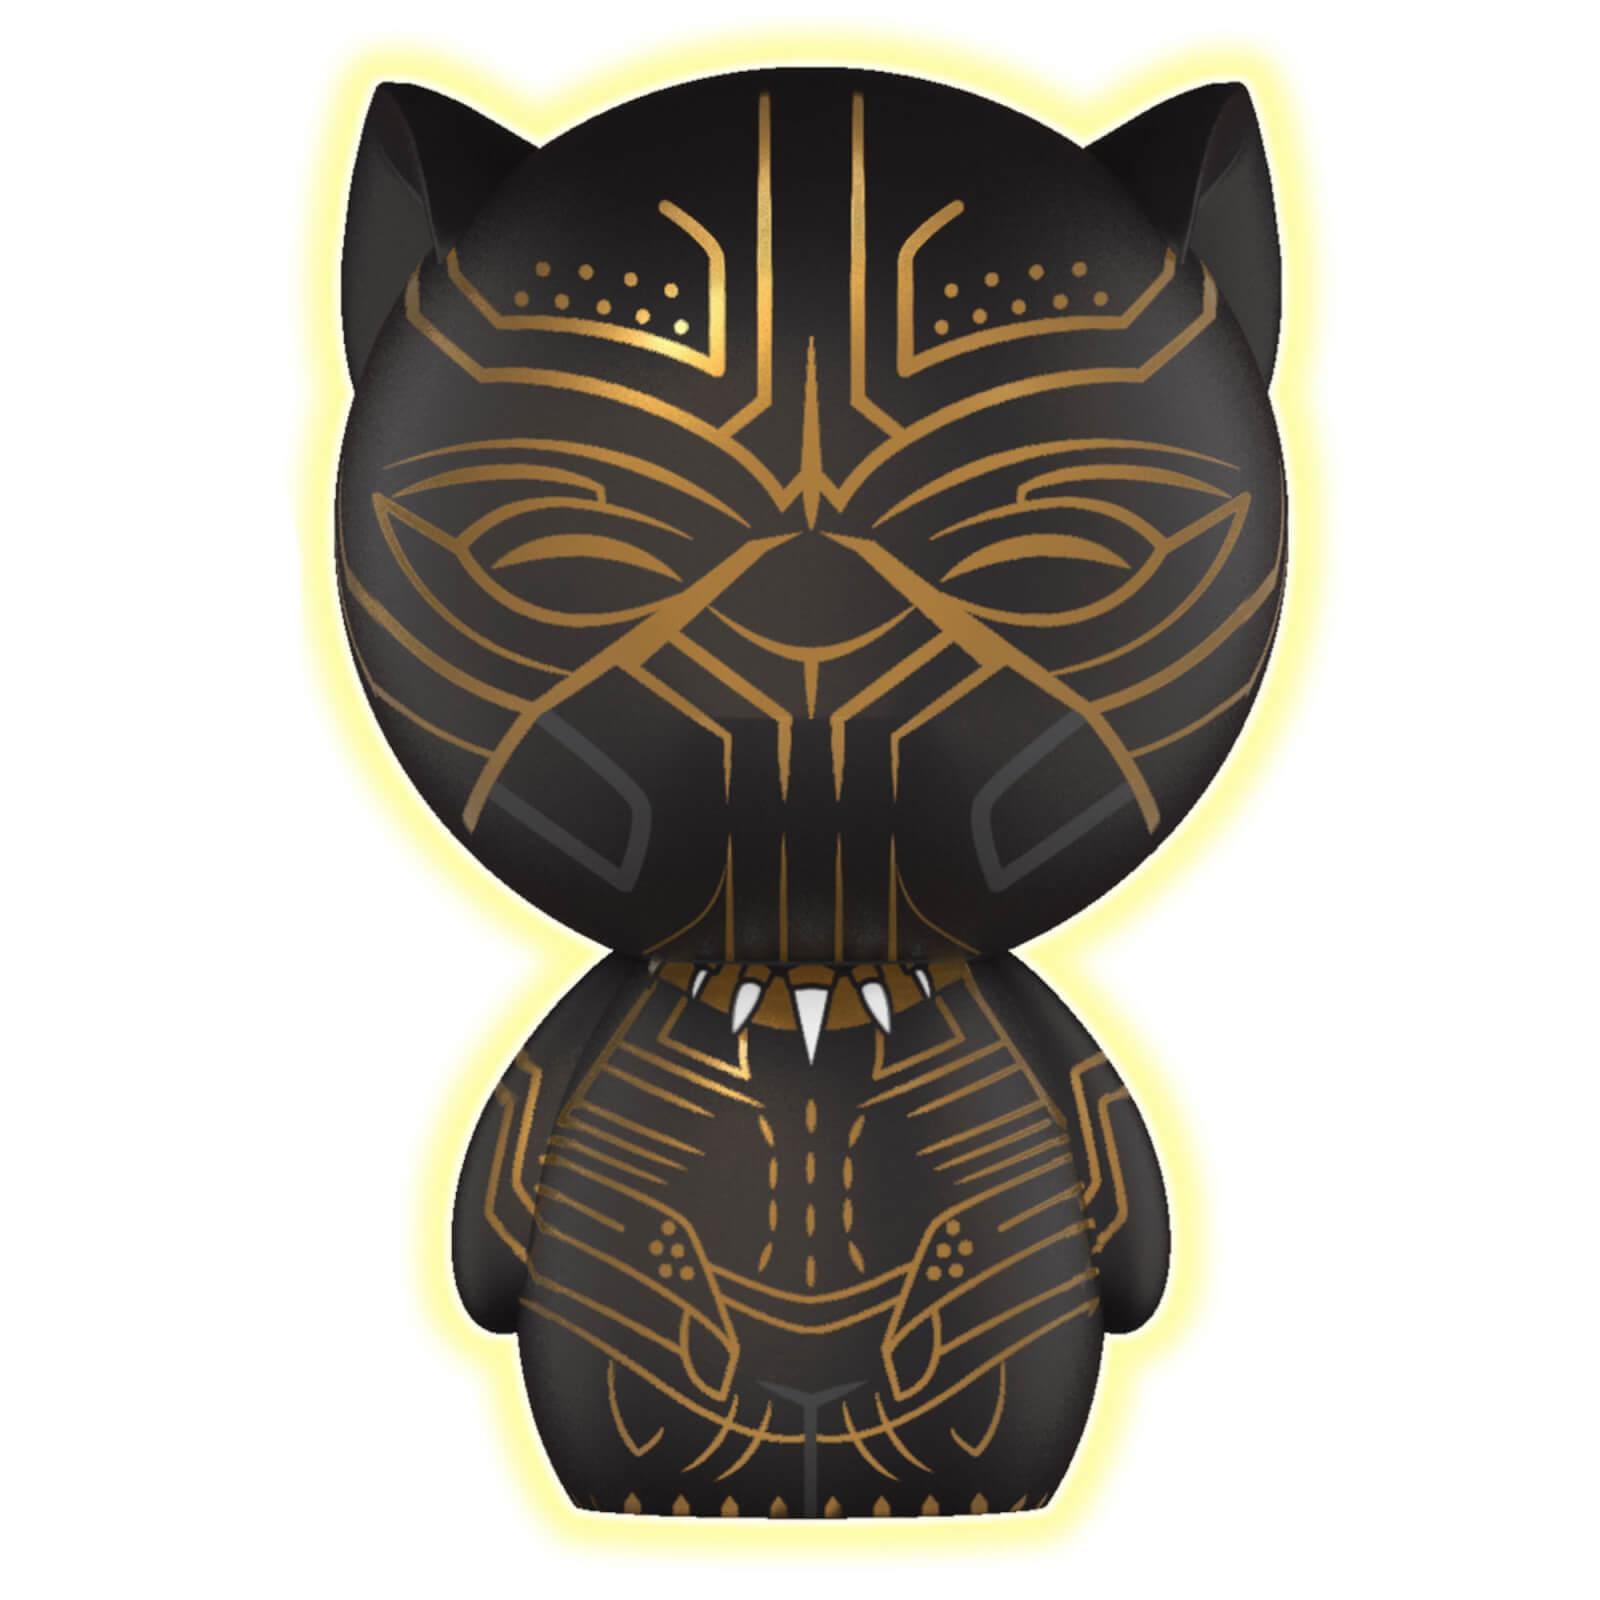 Black Panther Erik Killmonger Glow in the dark Dorbz Vinyl Figure